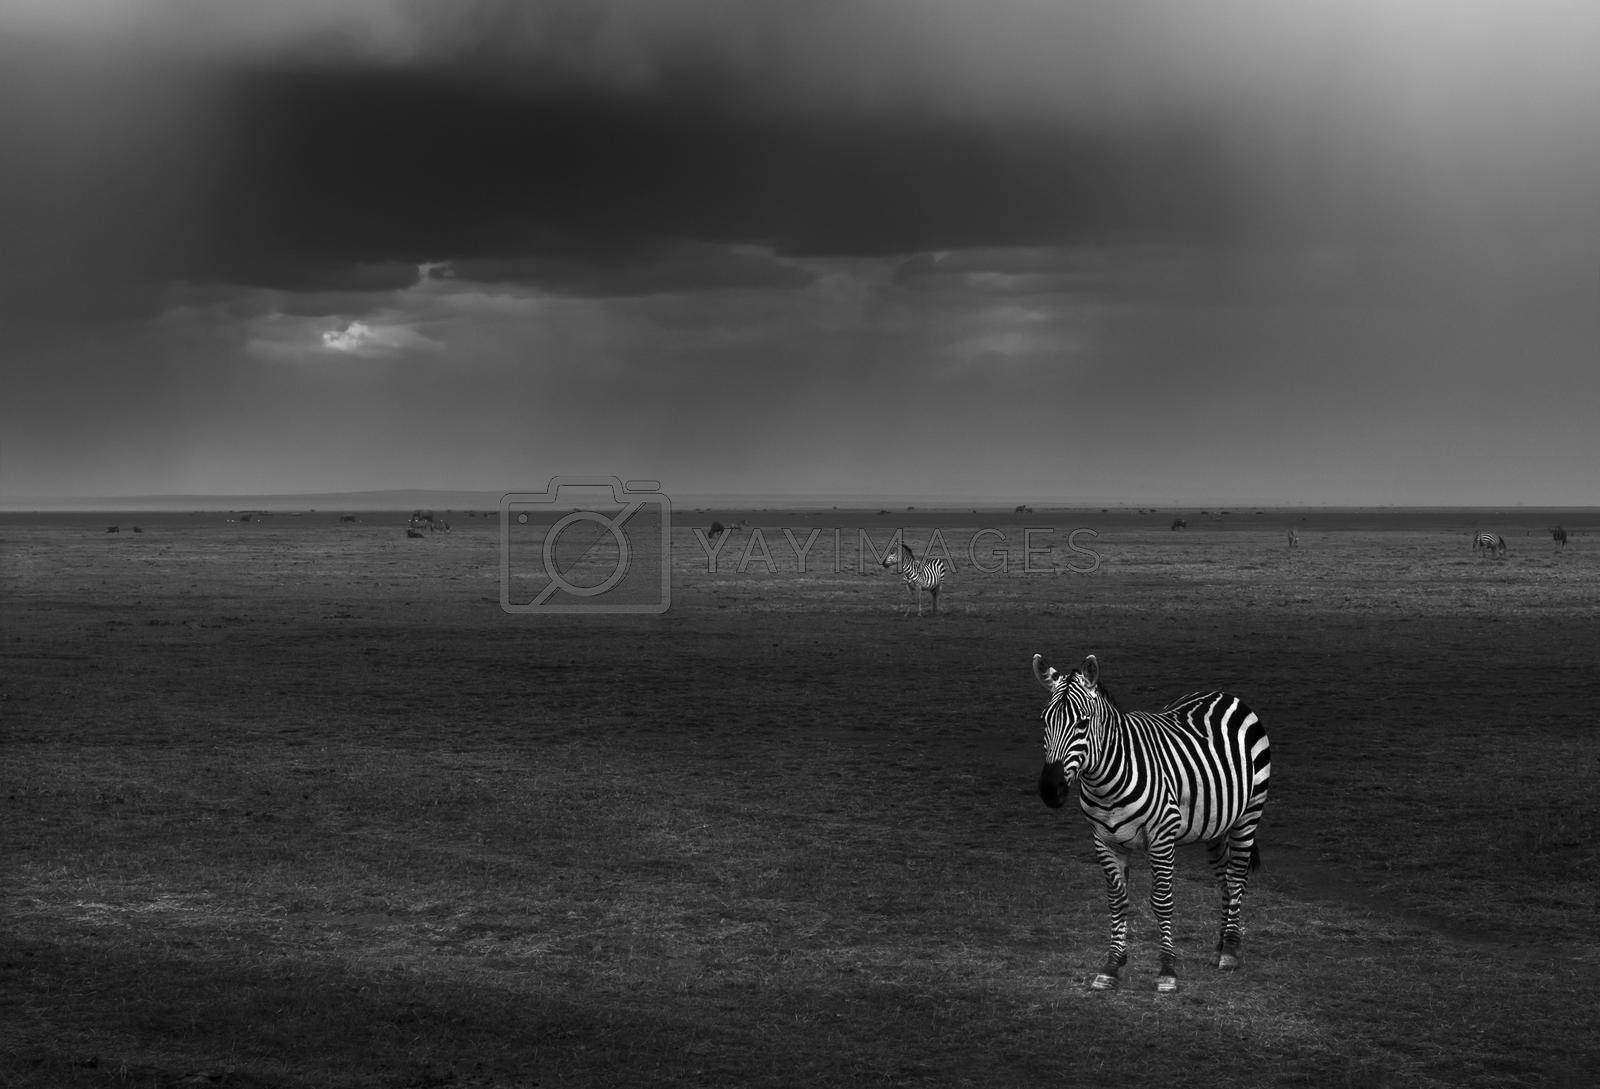 Black and White Photo of a Zebras Grazing in the Field. Beautiful Striped Wild Ungulate Animals. Game Drive. Safari in Kenya. Africa.